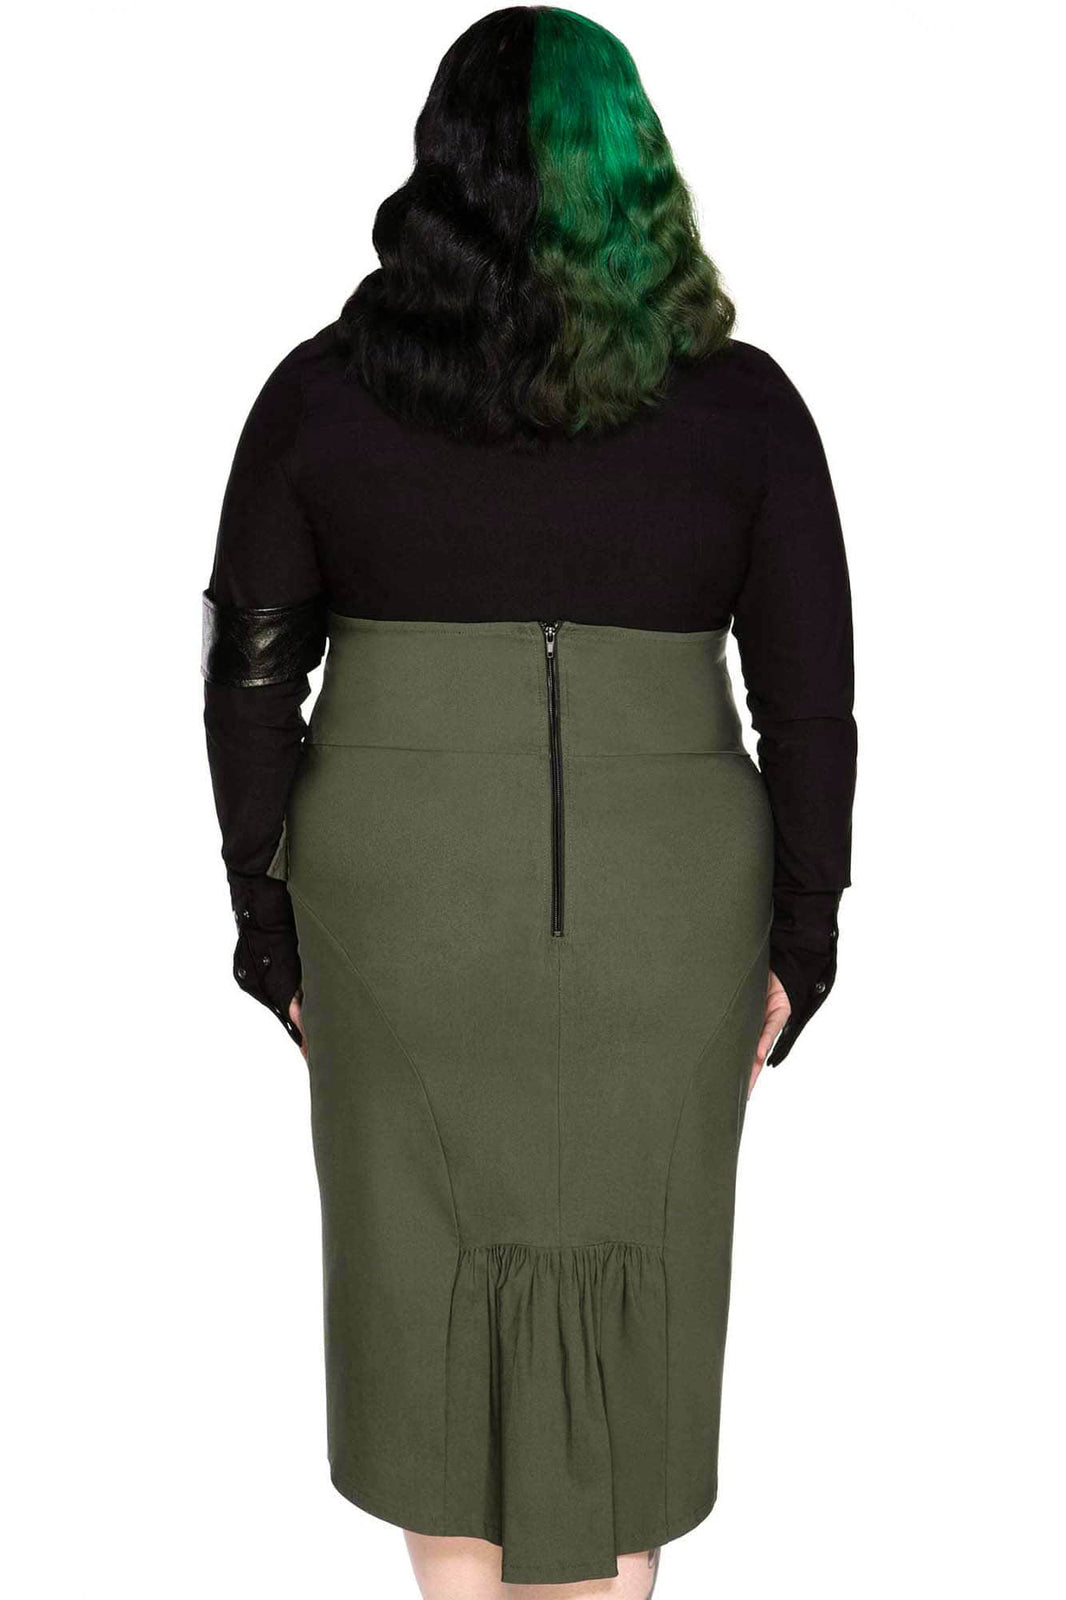 Darkwave Division Midi Skirt [KHAKI] [PLUS]